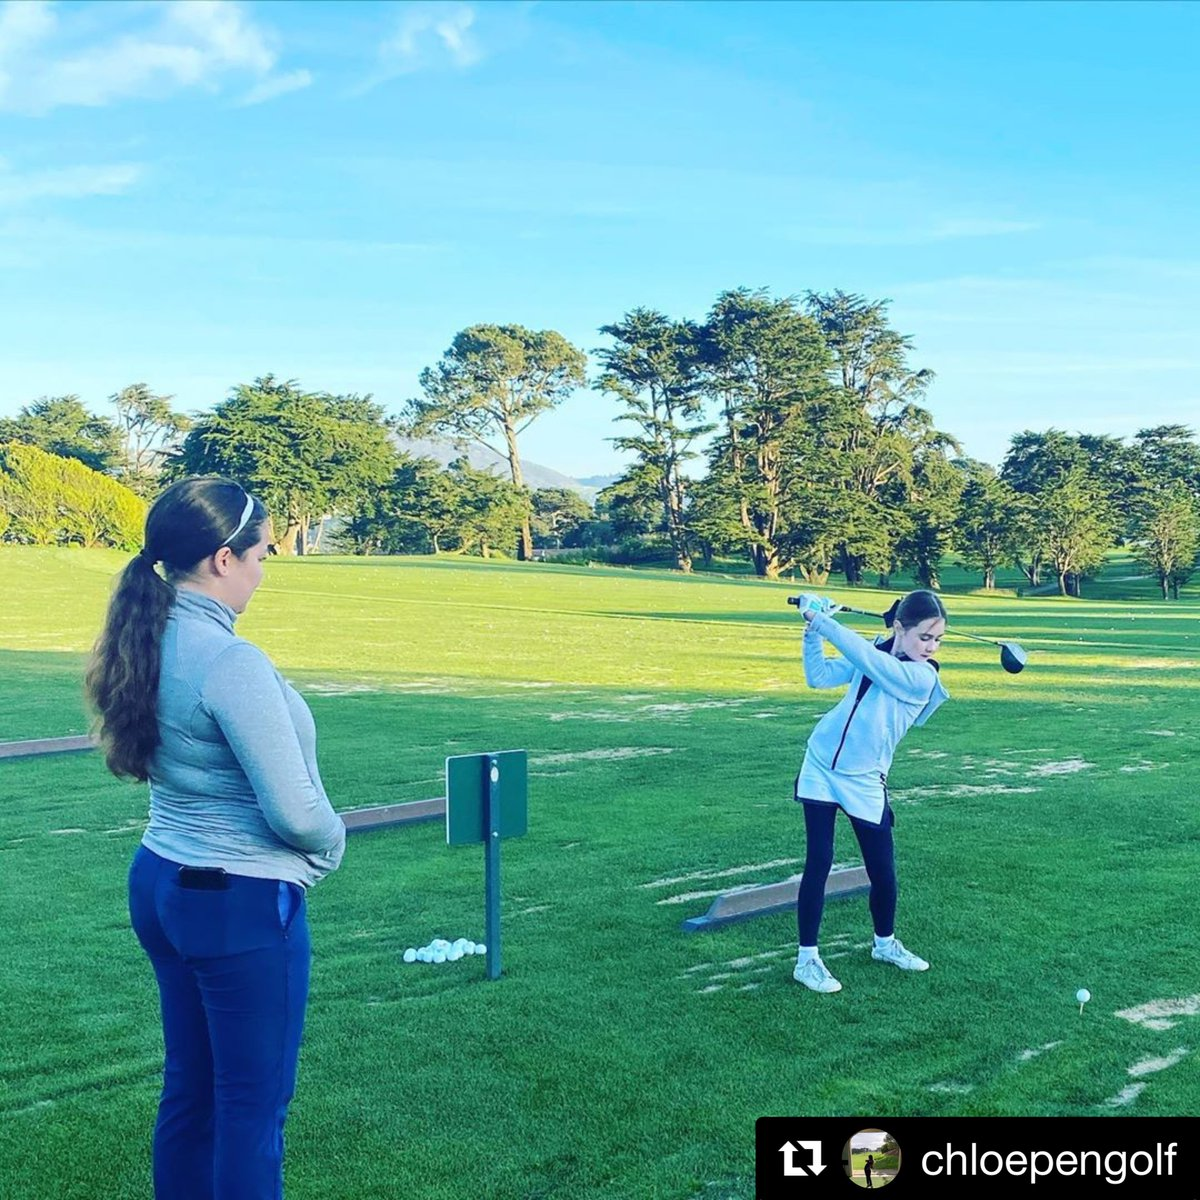 Grip it and rip it! Get back in golf shape and book a lesson with one of our golf professionals today via the OC website (link in bio) #OCgolf #OlympicClub … #Repost @chloepengolf Getting coached by the best #golfcoach #womenempowerment #olympicclub #girlsofgolfpic.twitter.com/aBgYDwQStx